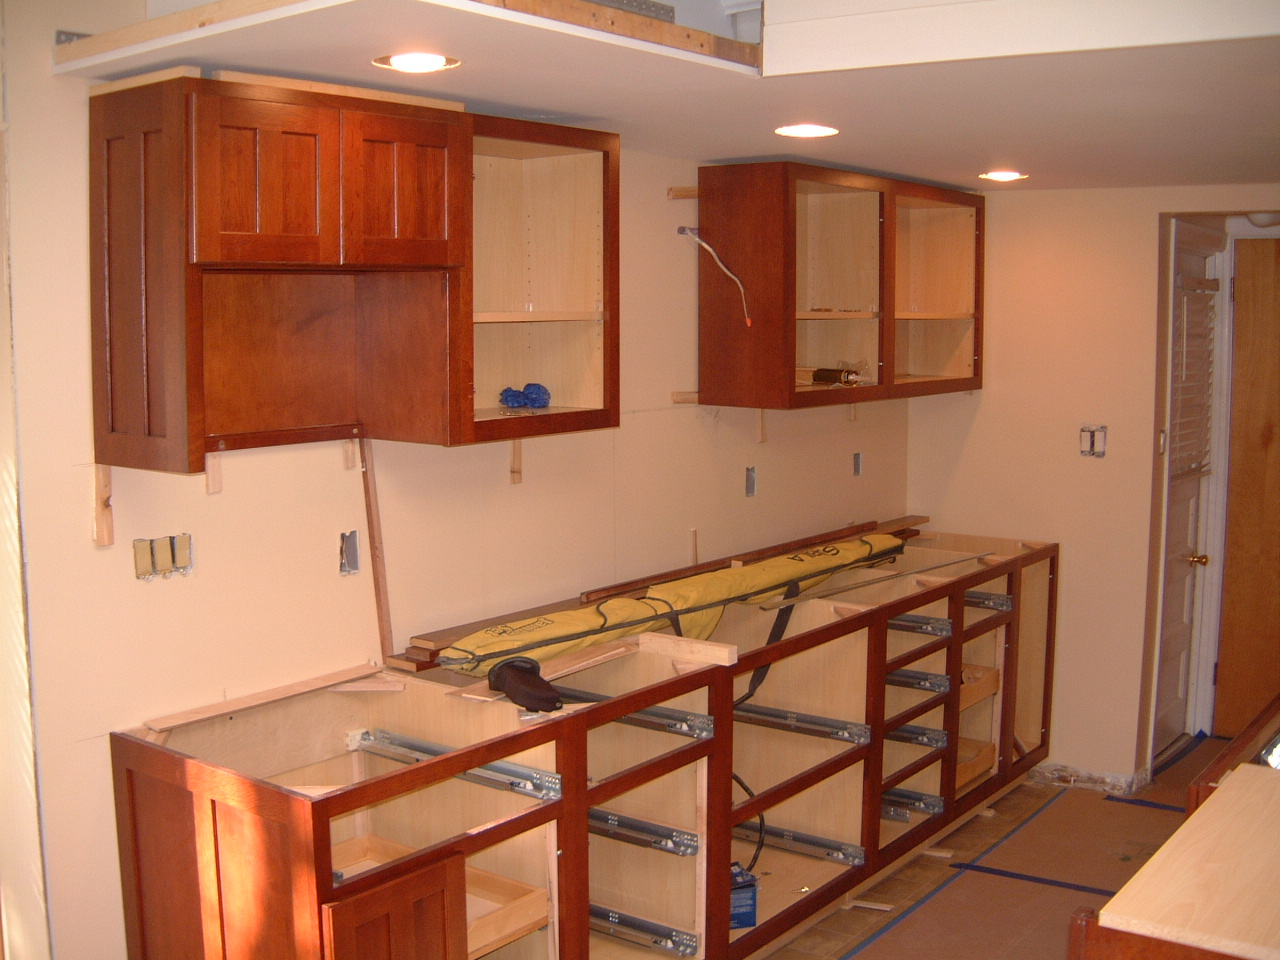 Wall Mounted Kitchen Cabinets Springfield Kitchen Cabinet Install Remodeling Designs